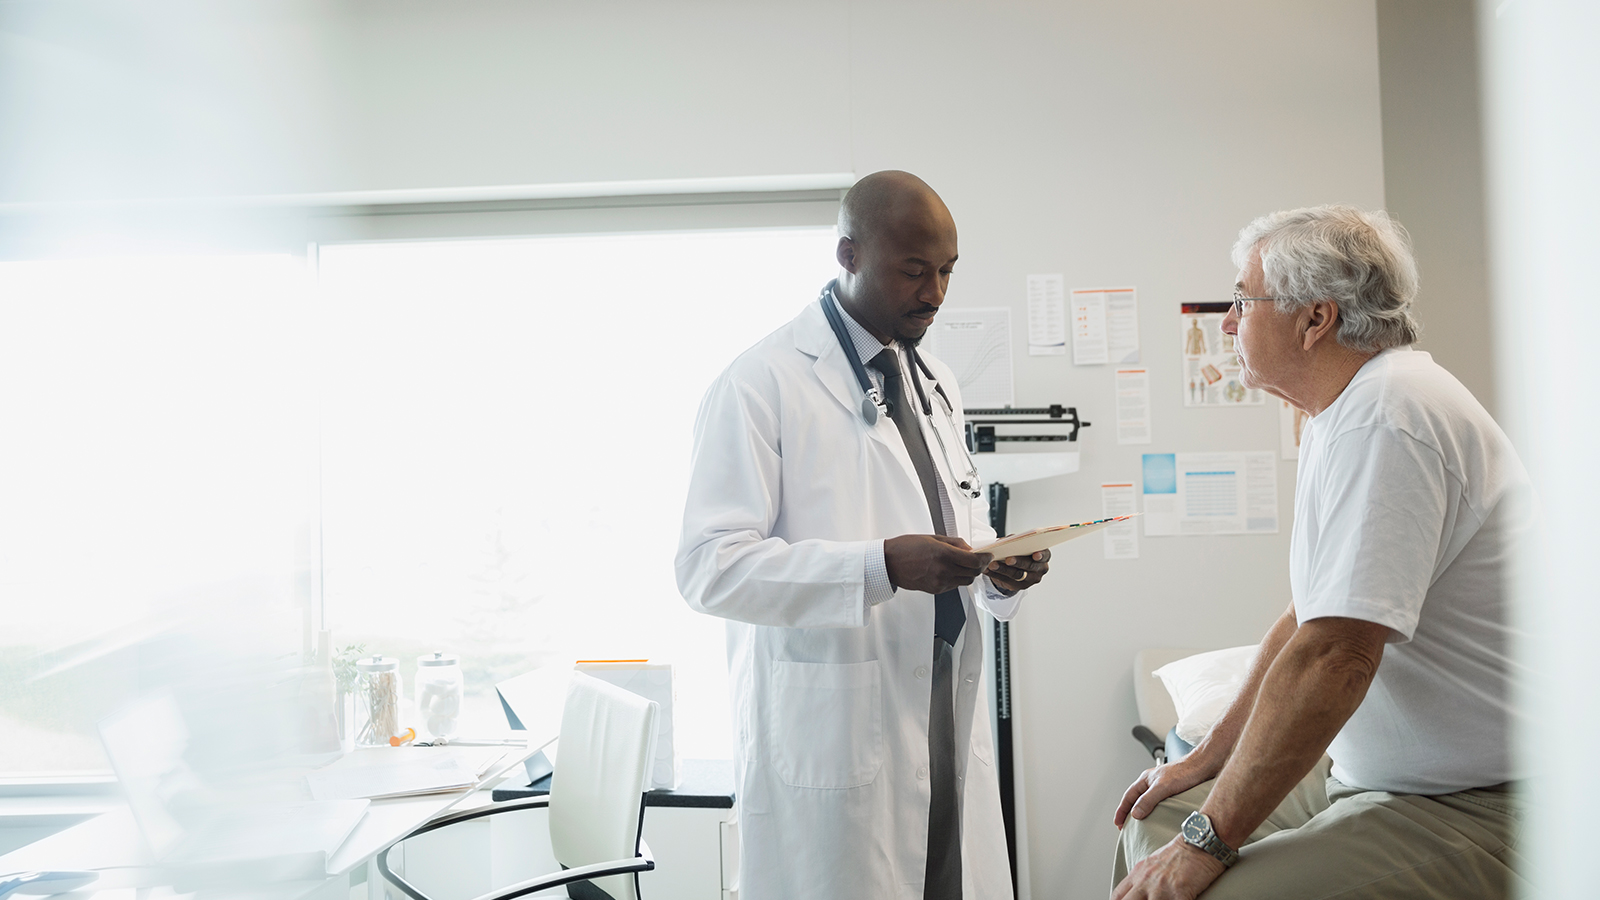 Doctor standing and speaking to a sitting patient in a hospital room.